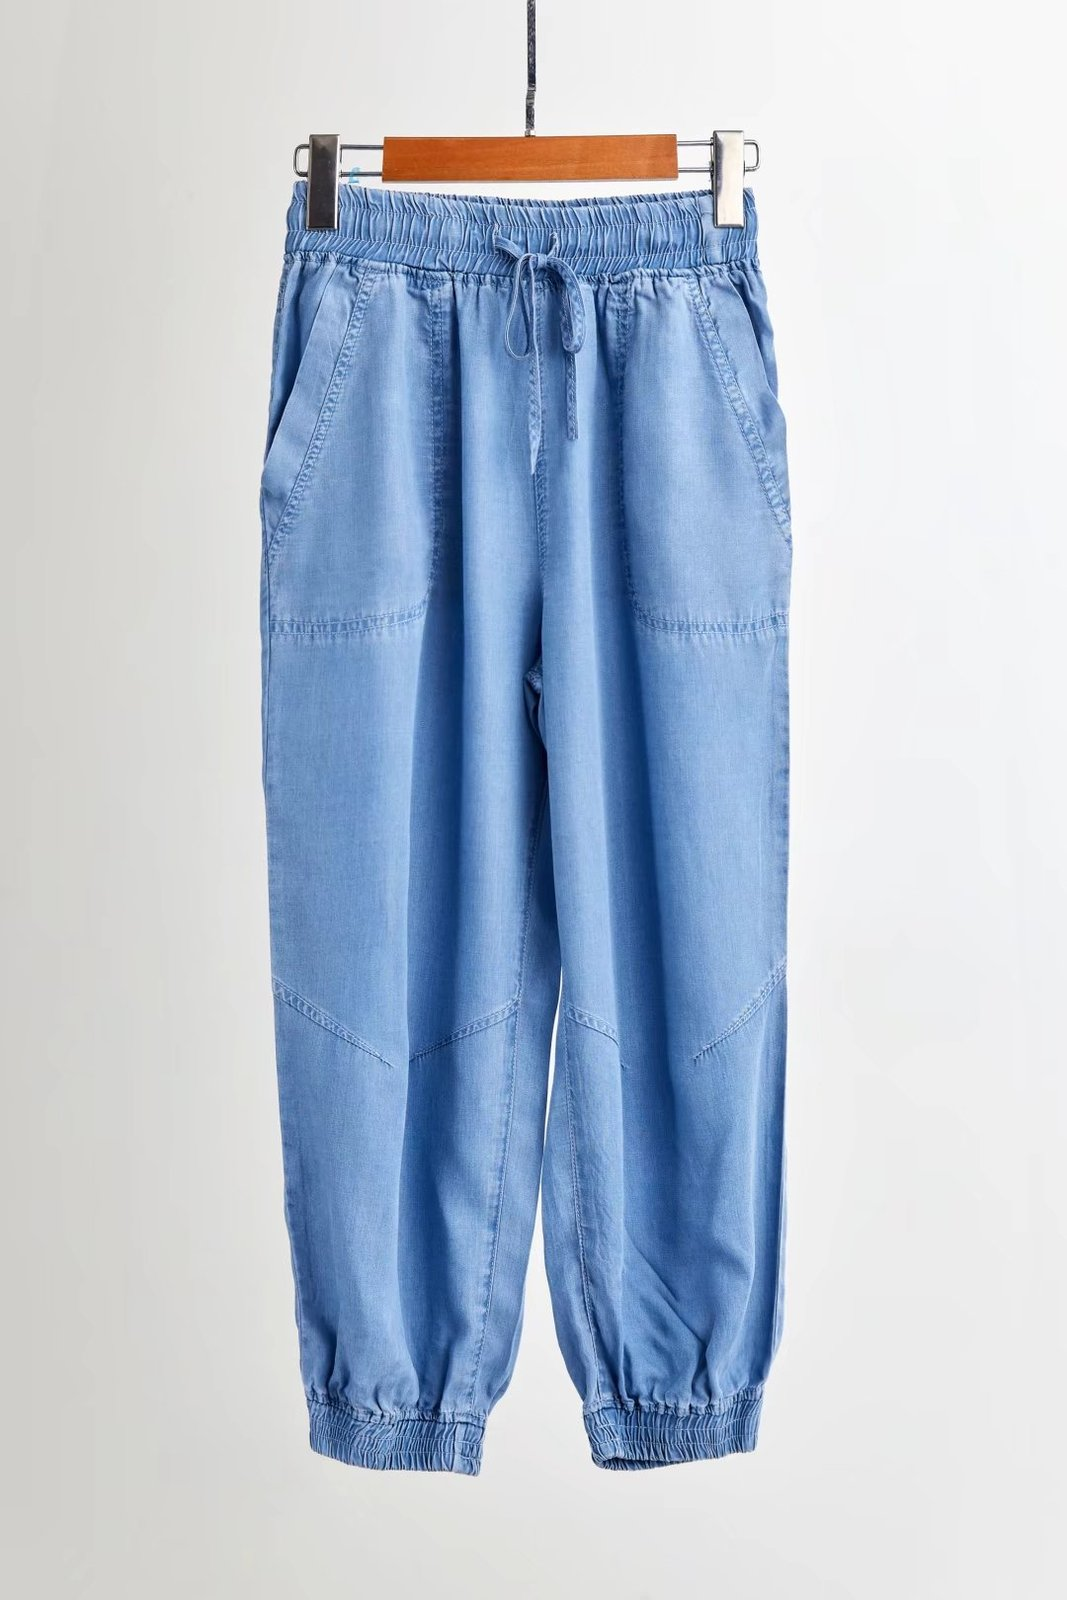 Light Blue Drawstring Elastic Waisted HAREM PANTS Denim CROP PANTS Trousers NWT